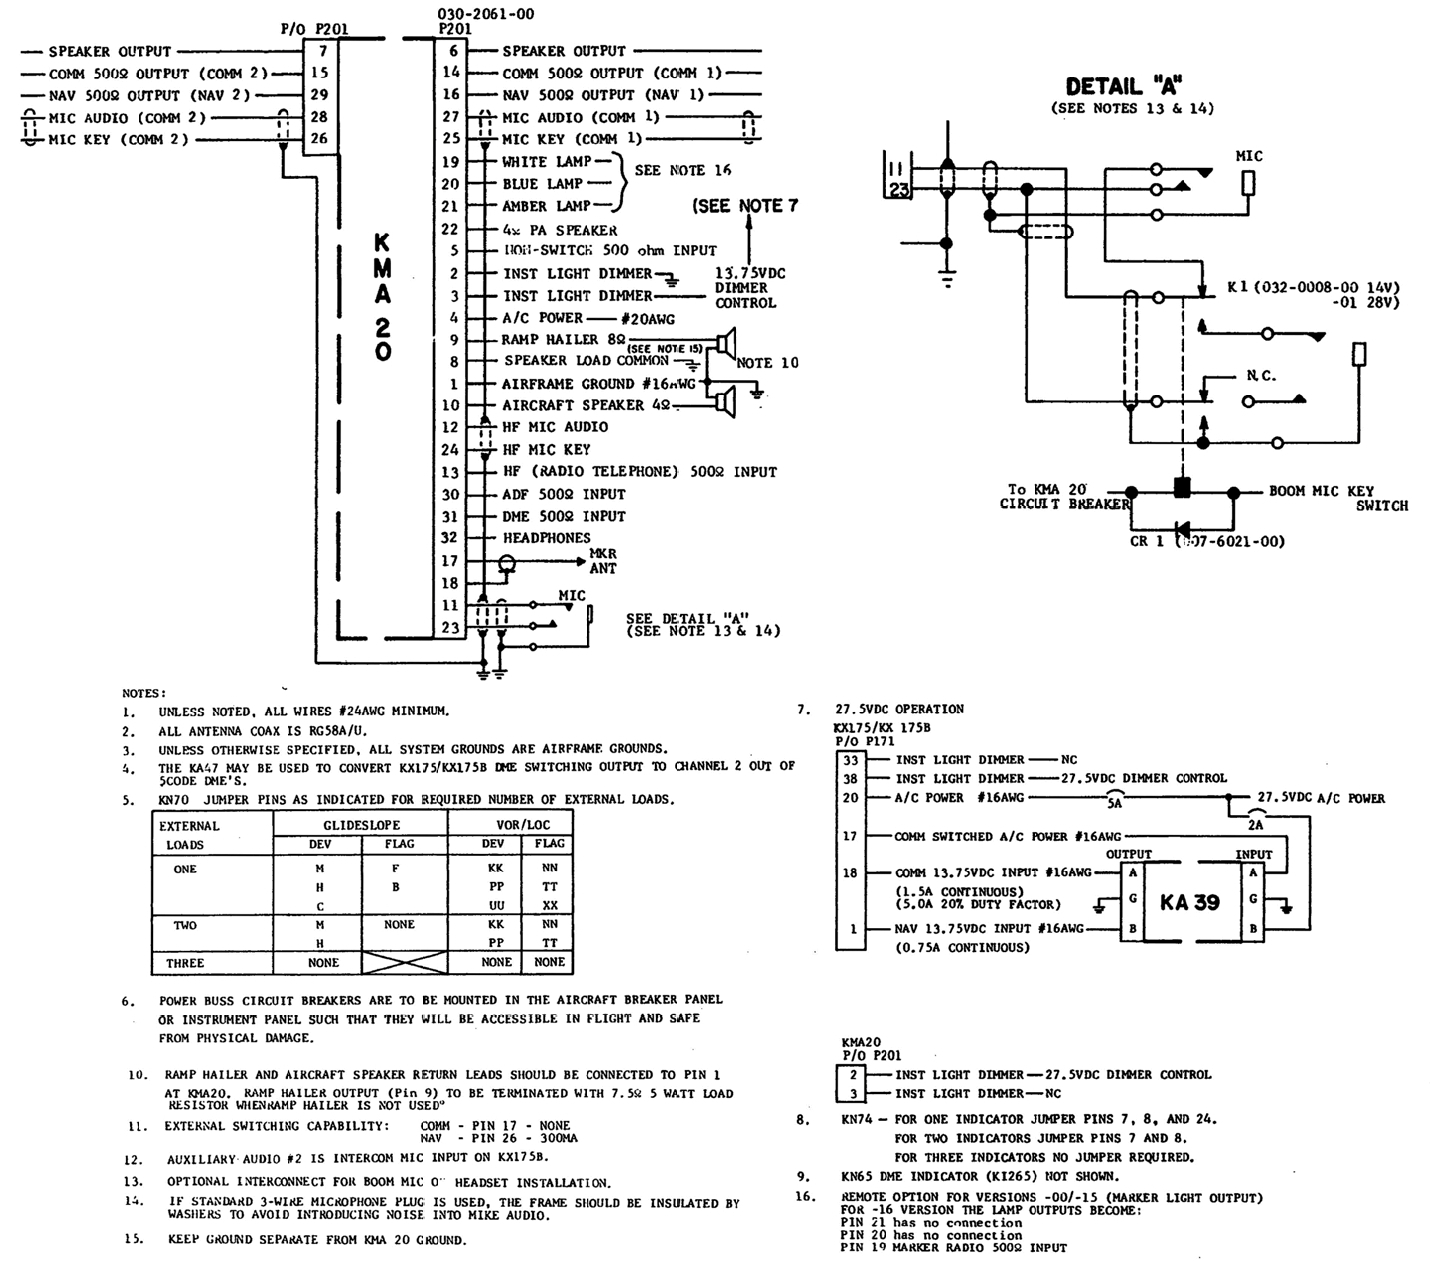 beautiful 70 volt speaker wiring diagram ensign best images for rh oursweetbakeshop info dxz725 pro audio clarion wiring diagram Gym Audio Wiring Diagrams